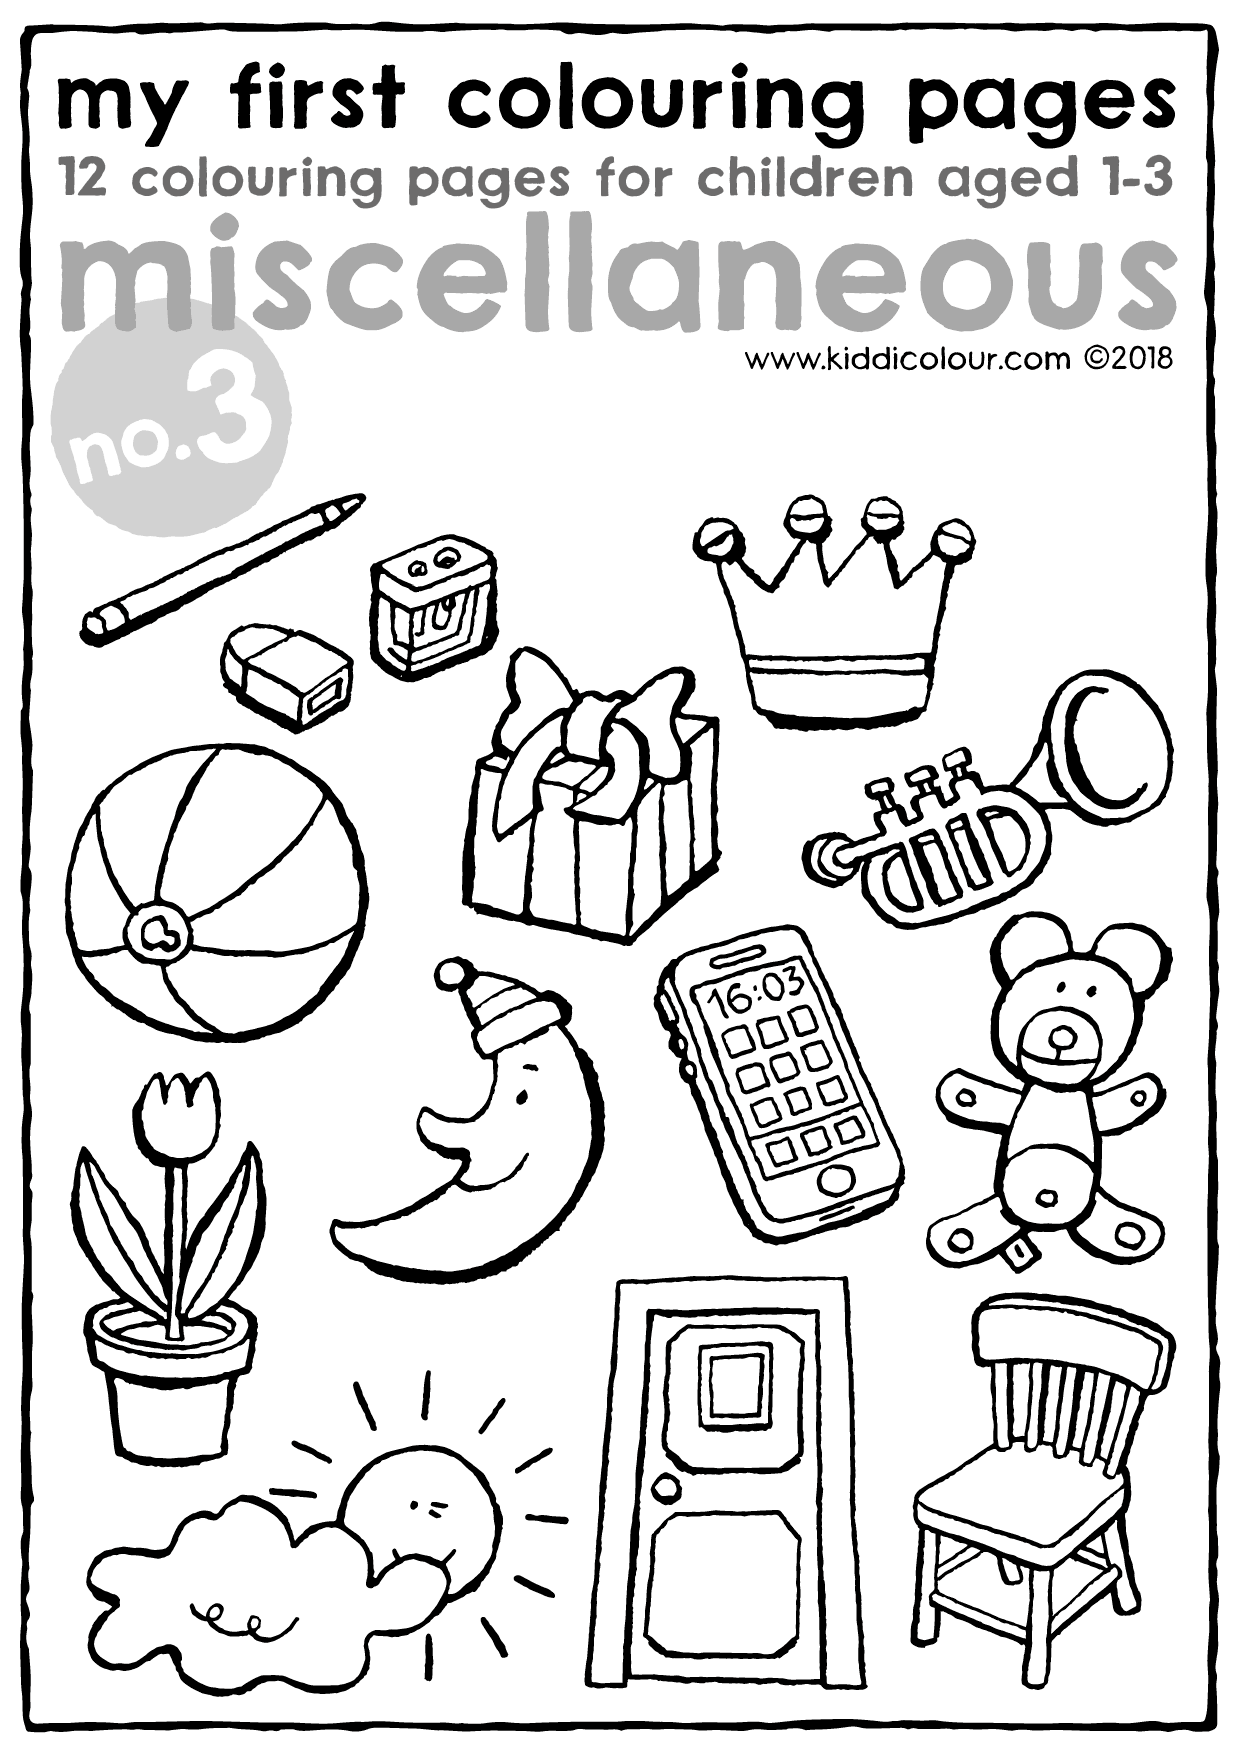 my first colouring pages no. 3: miscellaneous